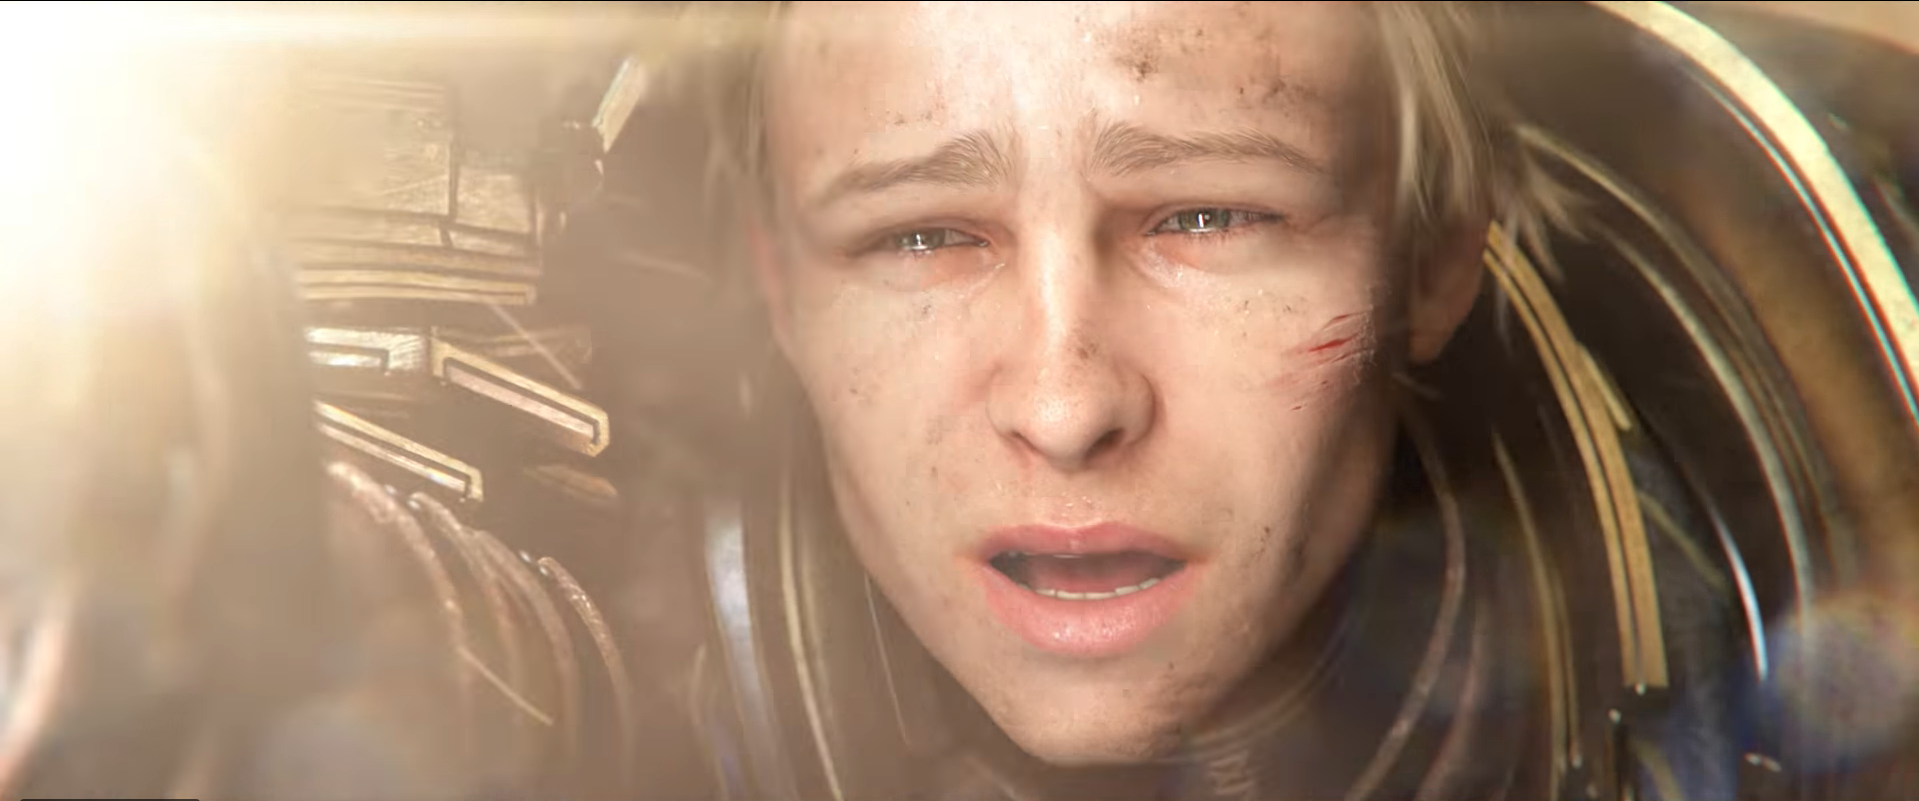 anduin1.PNG